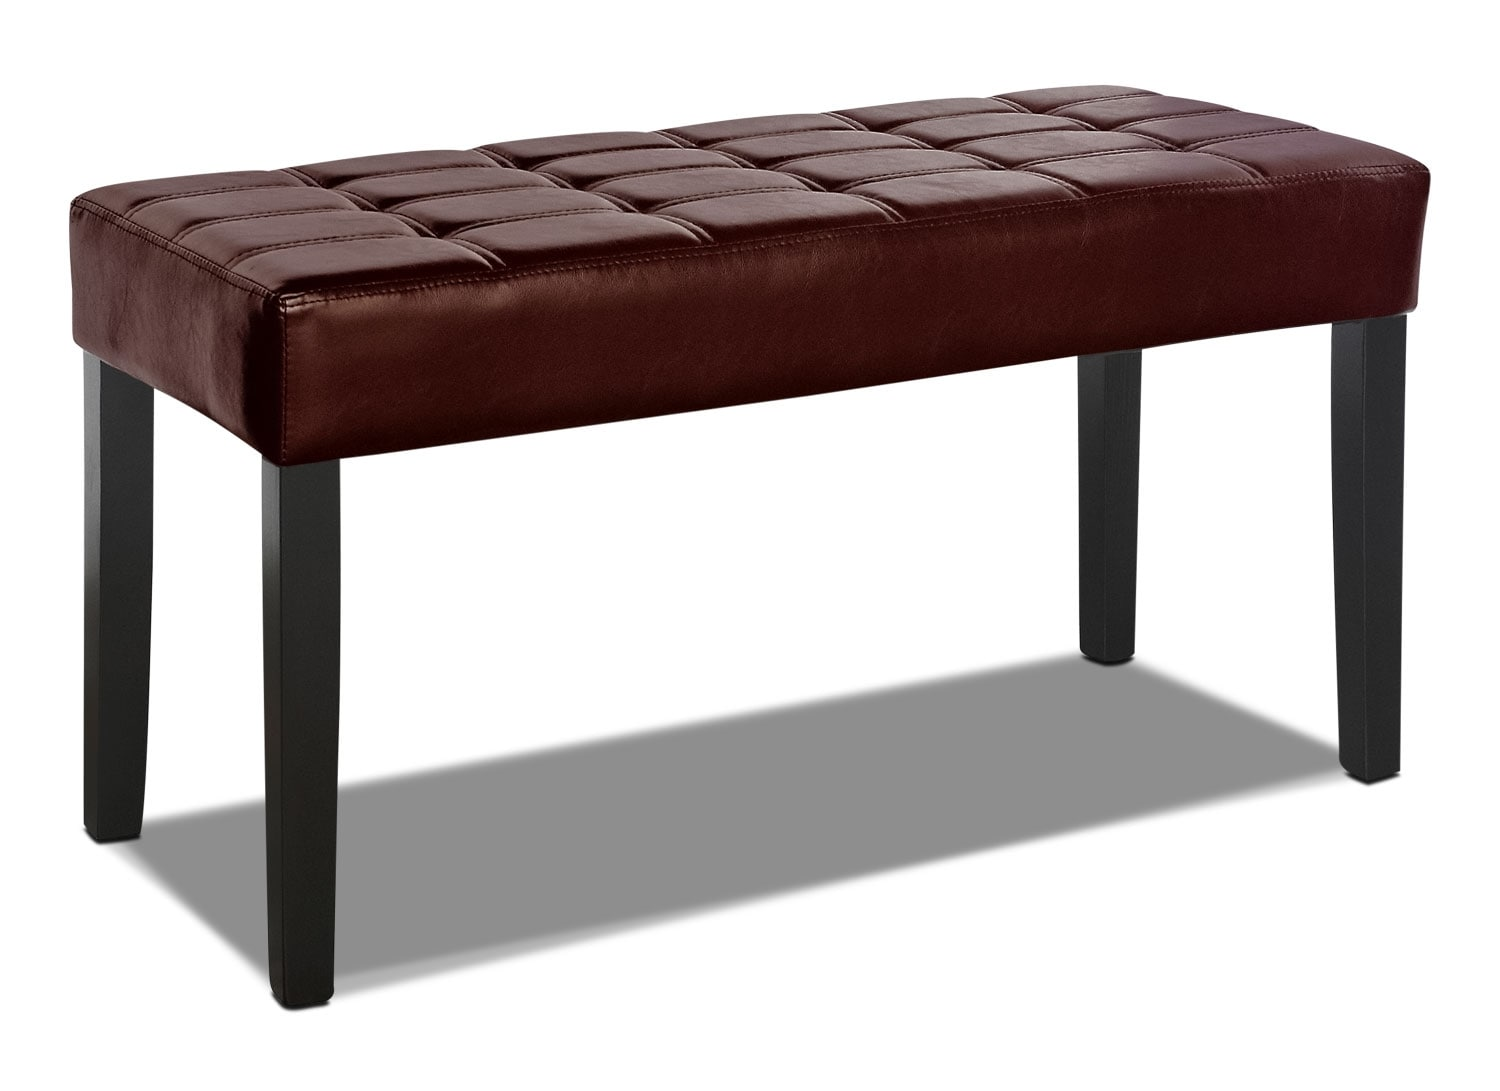 Cali Tufted Bench – Brown